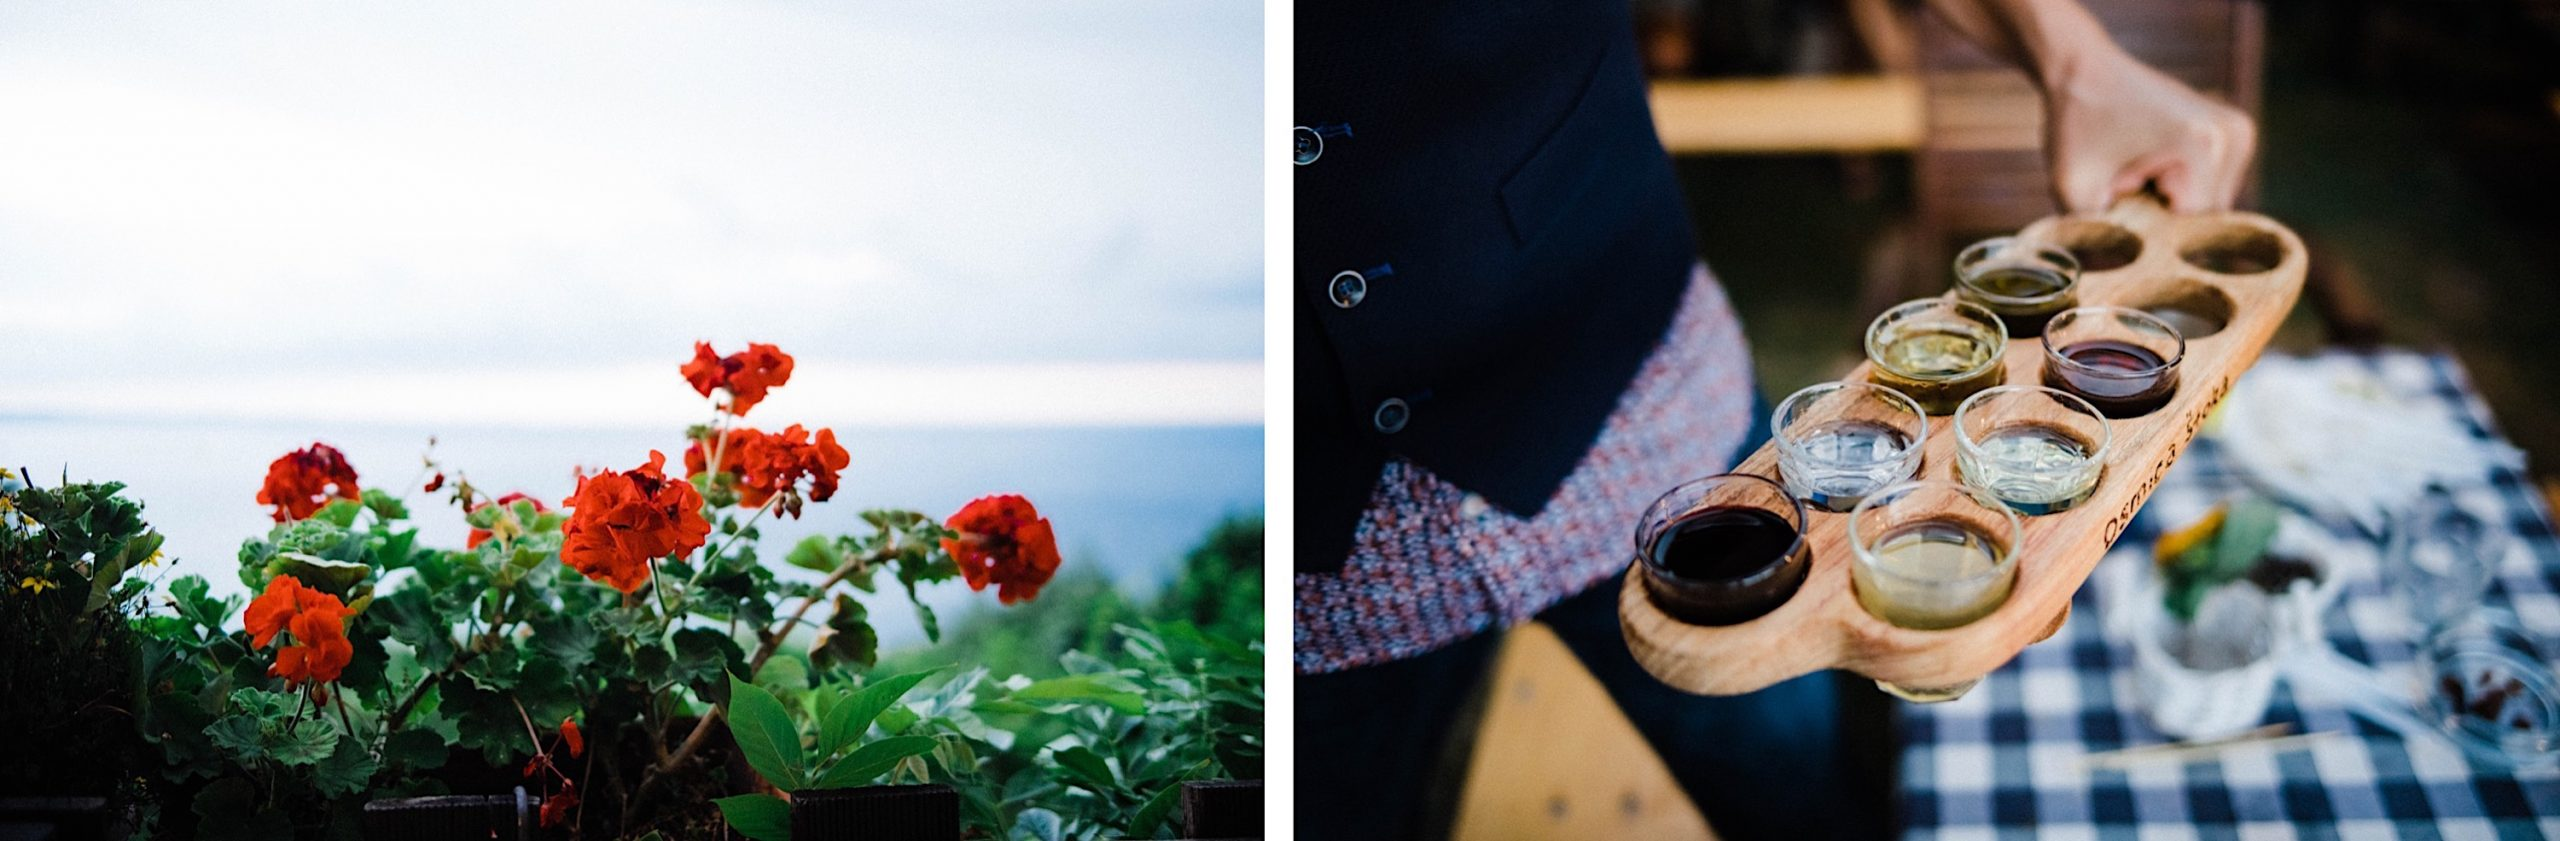 Two detail photos from an Intimate Wedding Dinner at an Osmiza in Trieste, the first of red geraniums looking out over the Adriatic Sea, the second a tray of seven different Grappa shots.